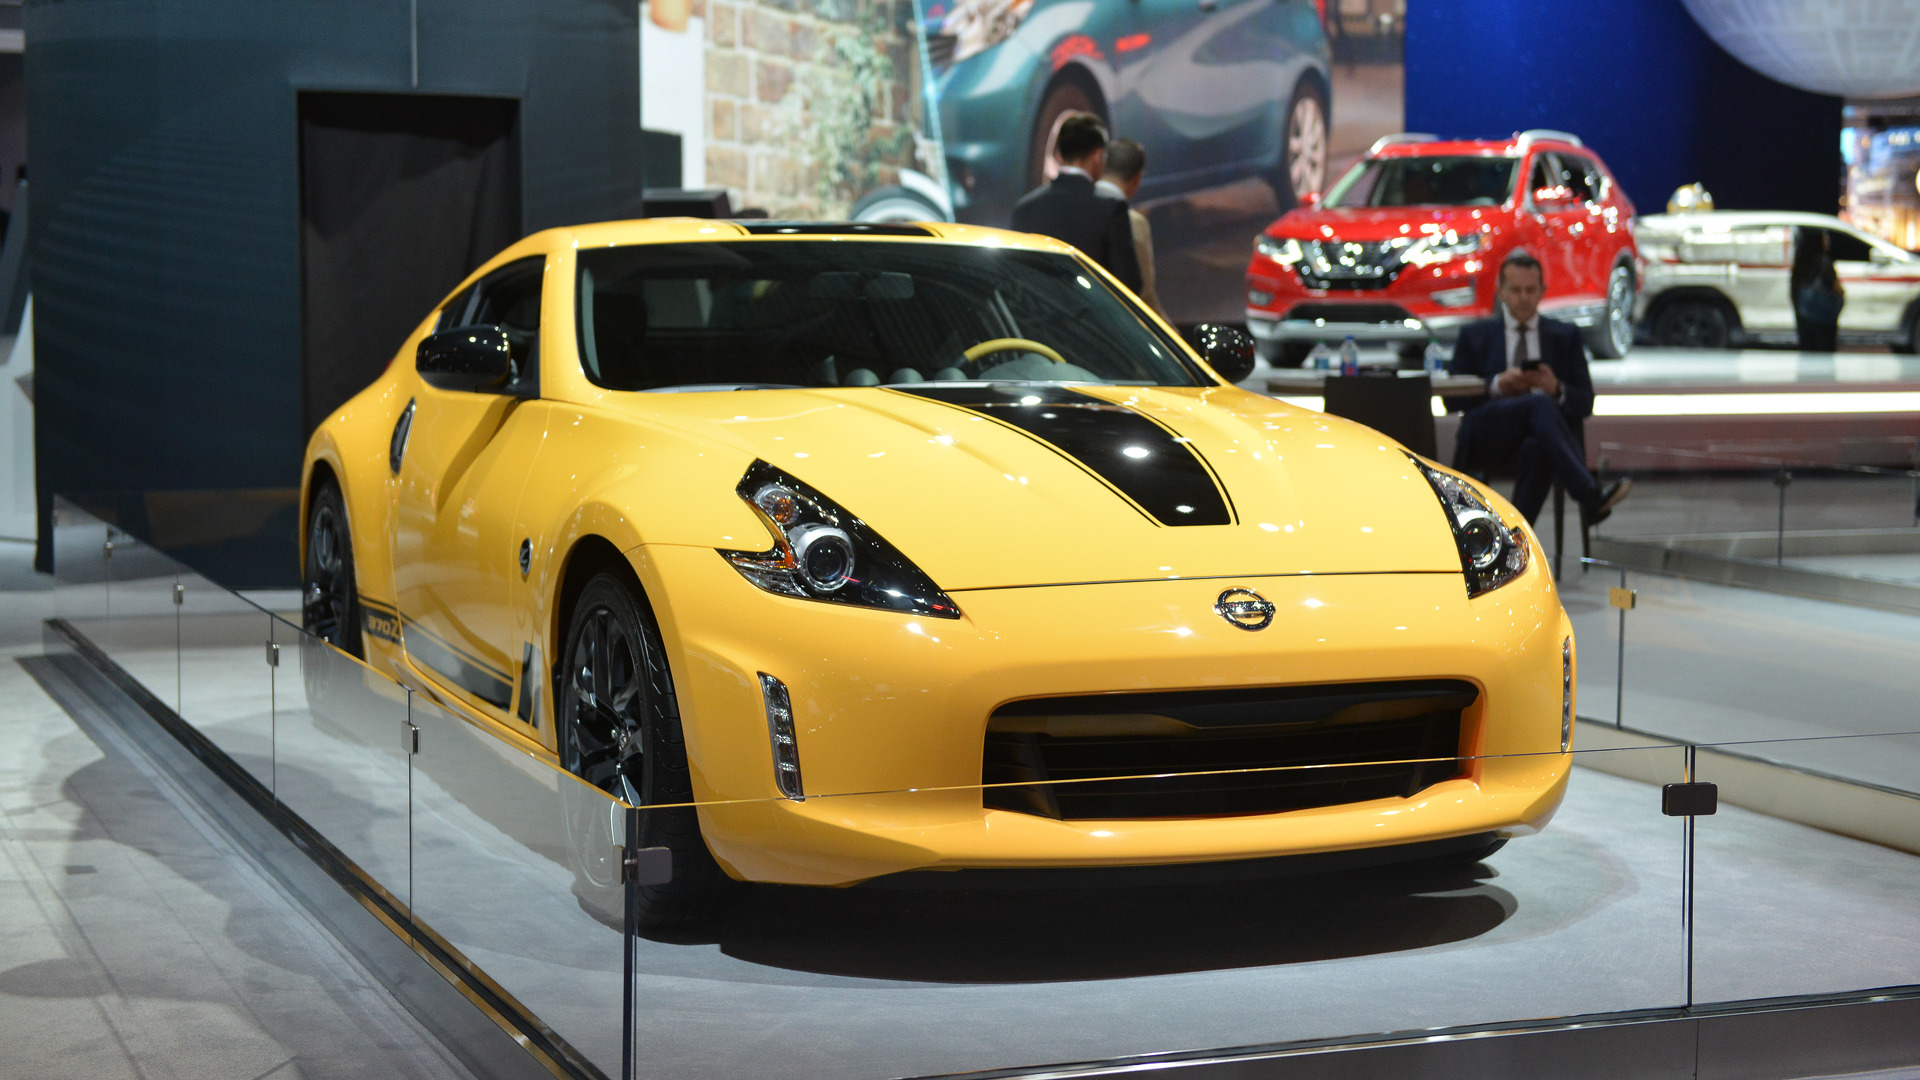 58 A 2020 Nissan Z Car Release Date and Concept